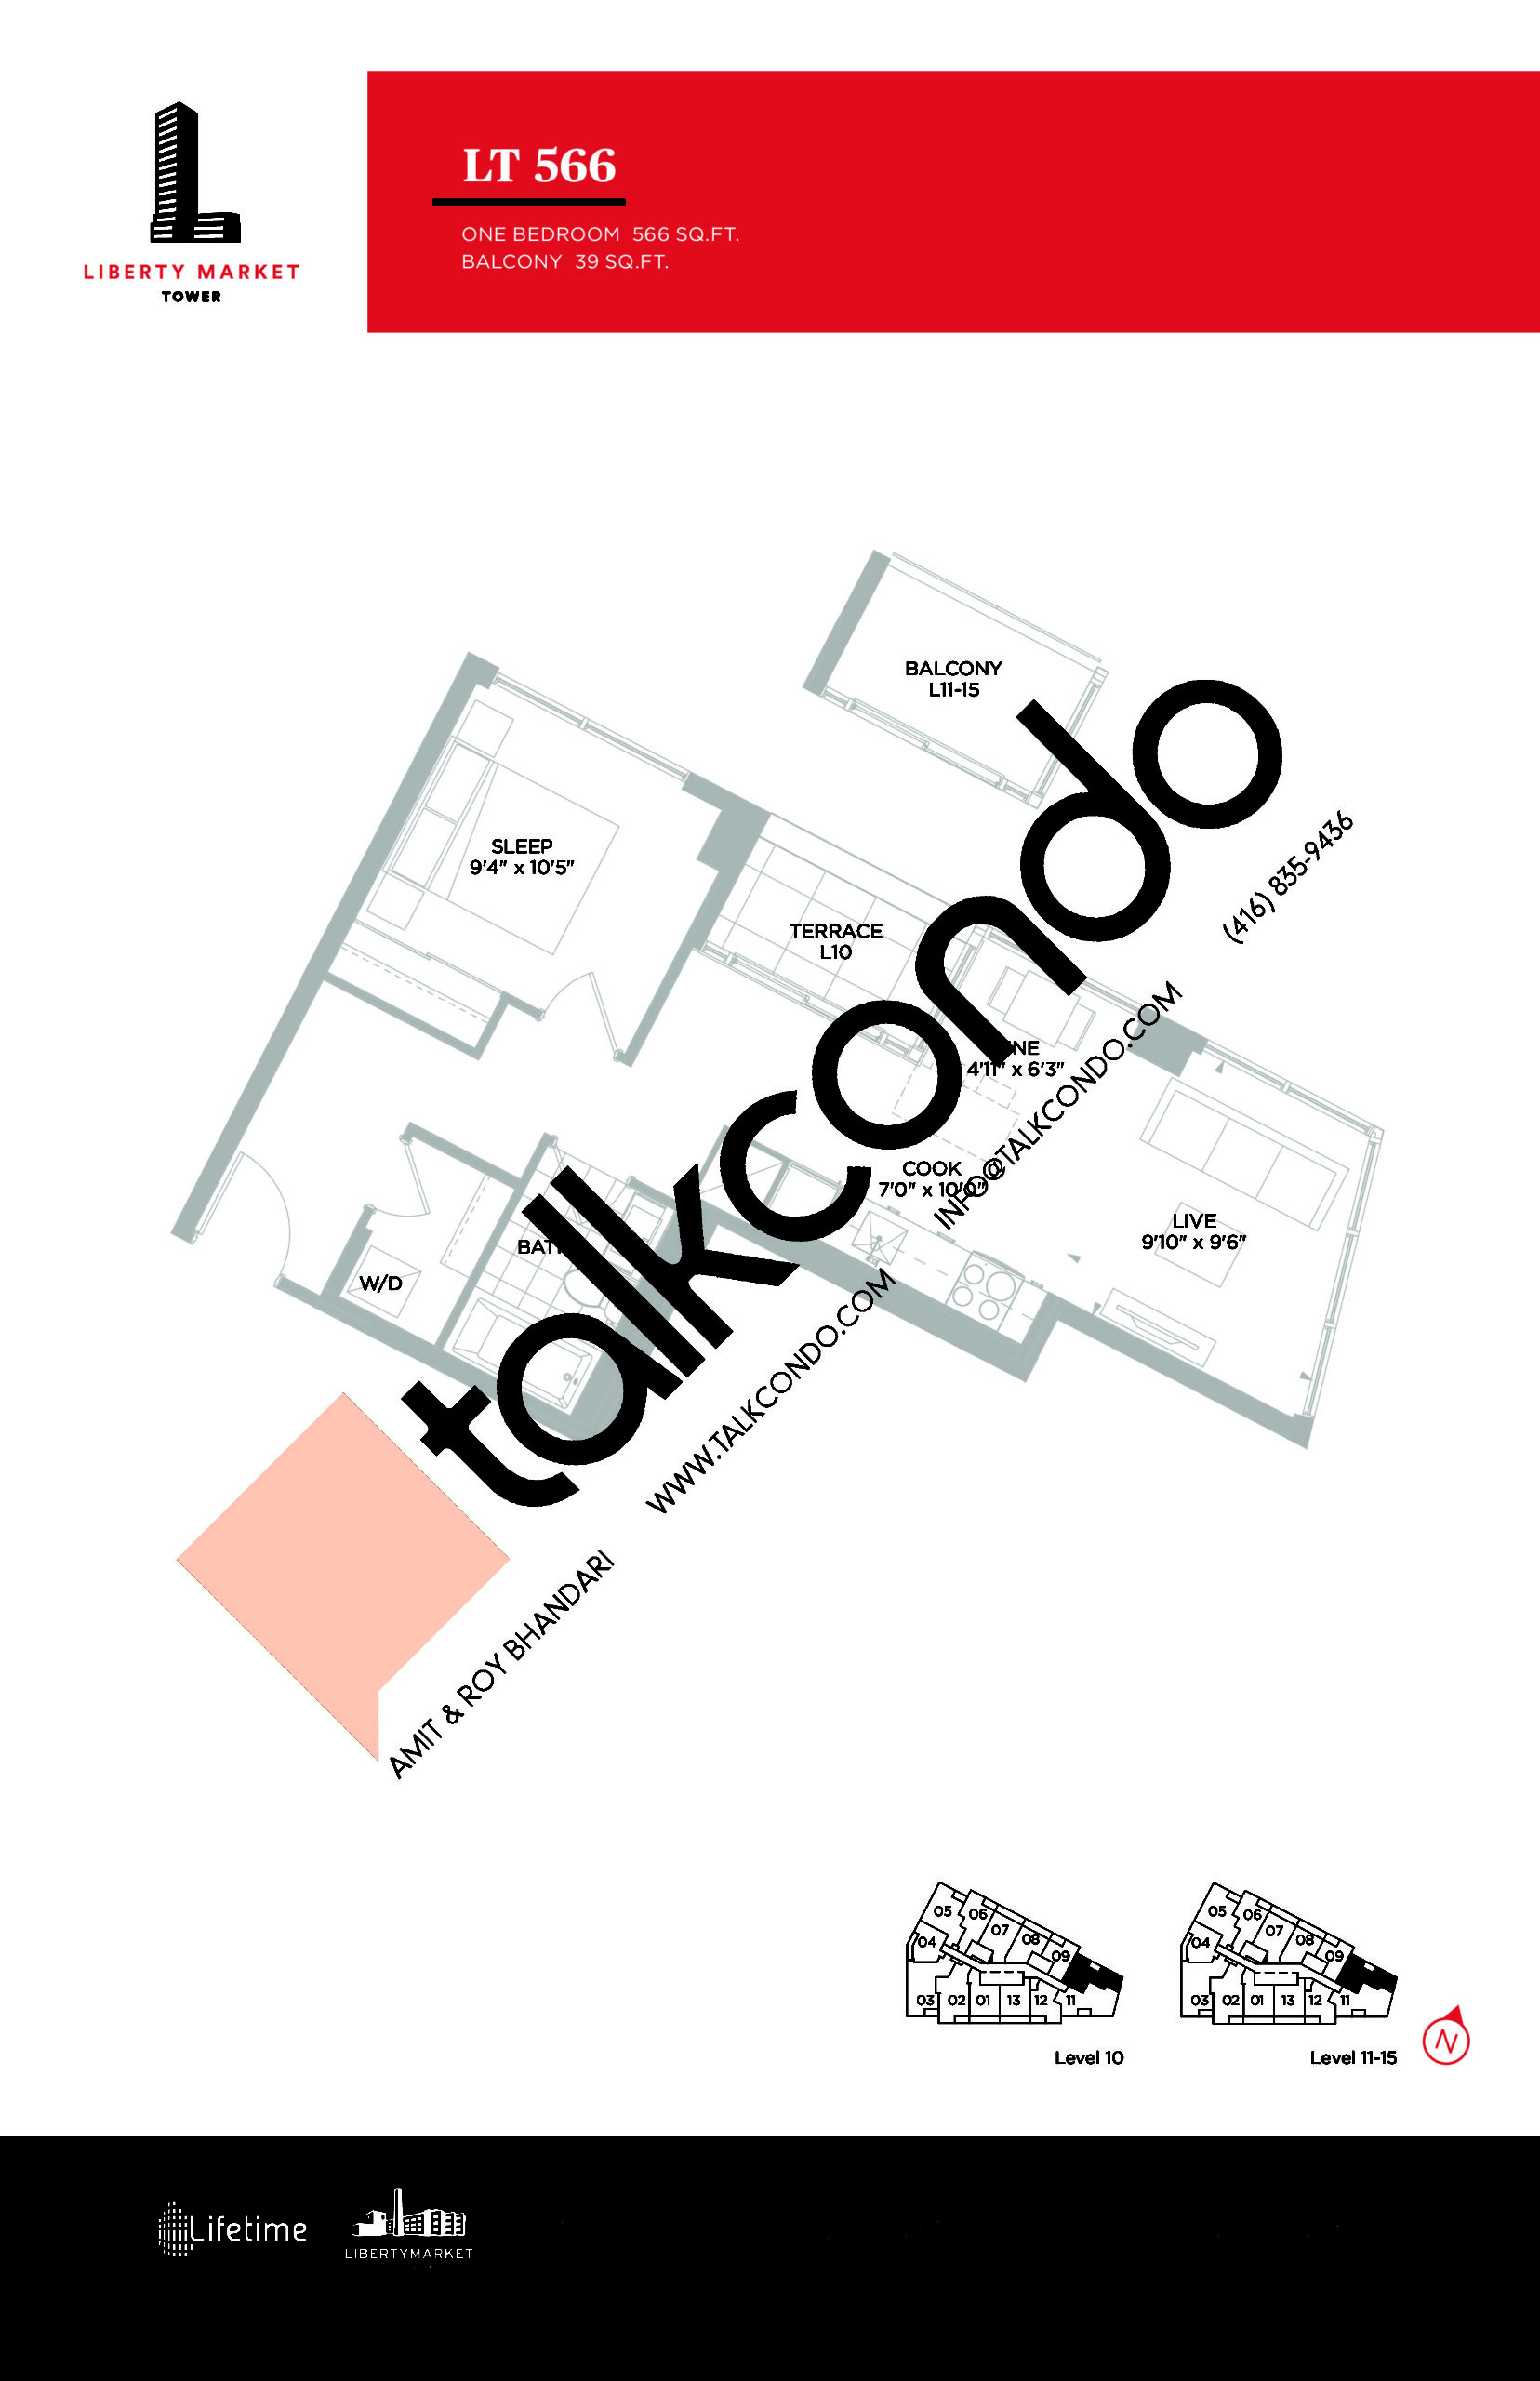 LT 566 - Terrace Collection Floor Plan at Liberty Market Tower Condos - 566 sq.ft